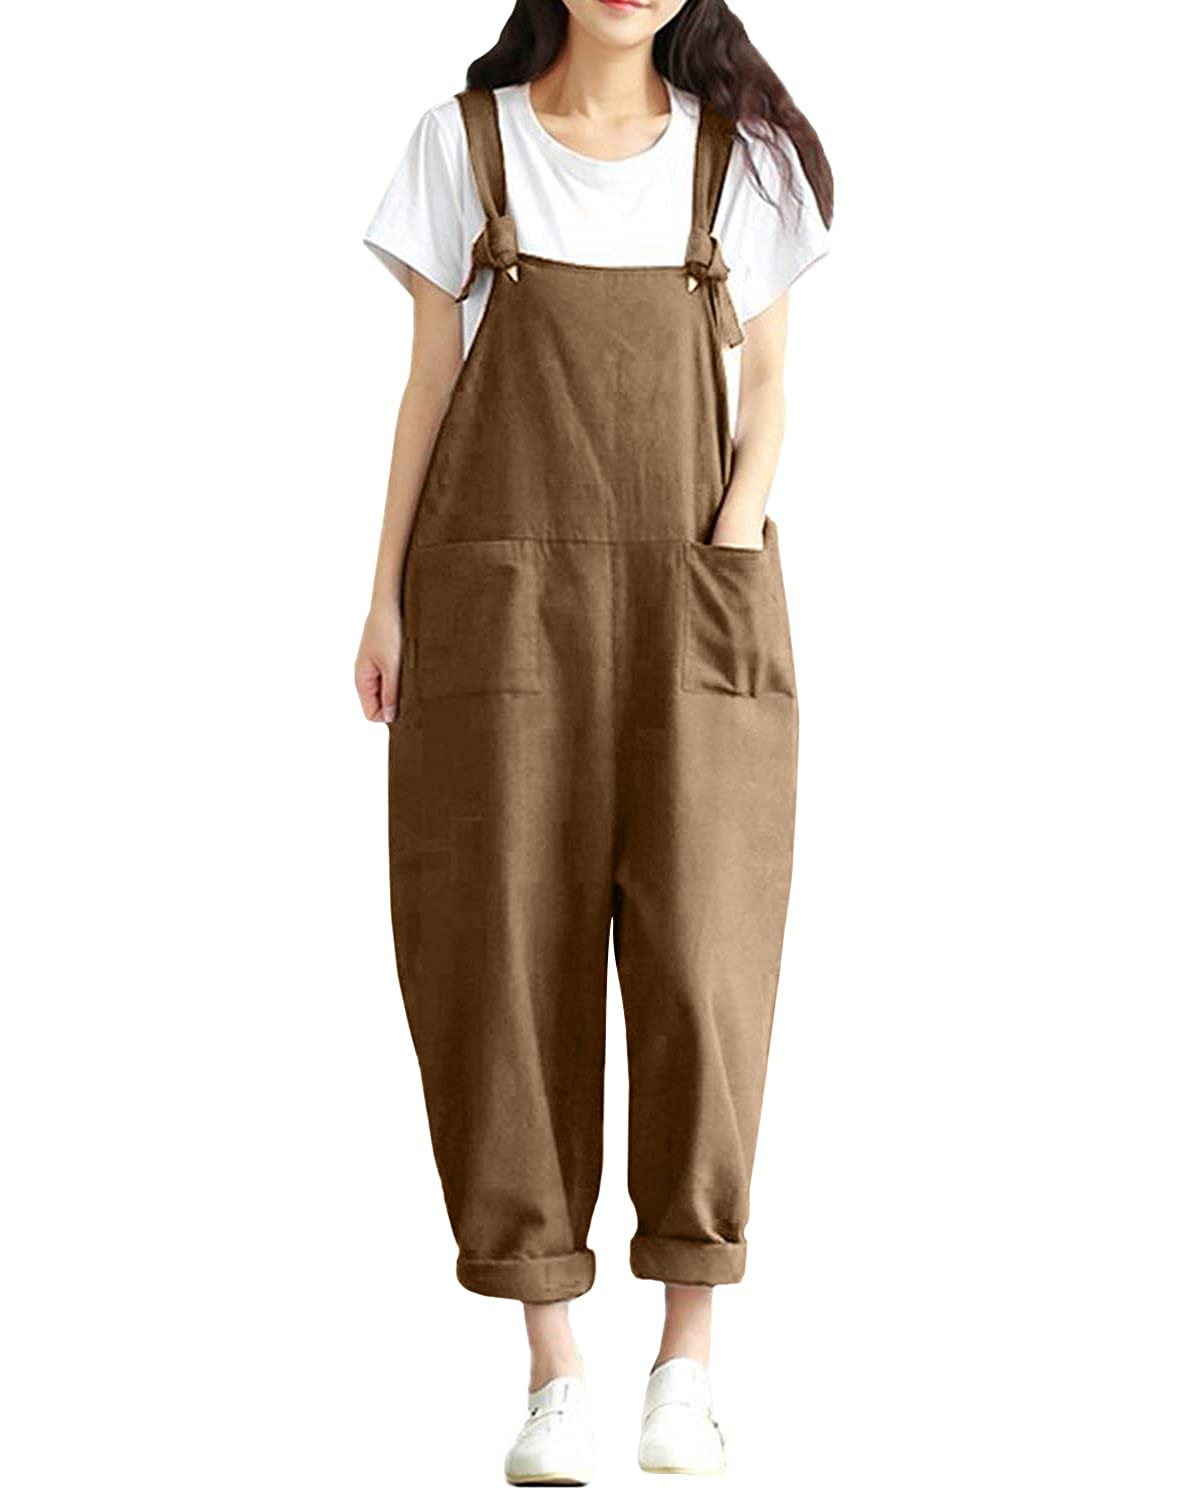 Vintage Overalls 1910s -1950s Pictures and History ZANZEA StyleDome Womens Retro Loose Casual Baggy Sleeveless Overall Long Jumpsuit Playsuit Trousers Pants Dungarees £20.99 AT vintagedancer.com